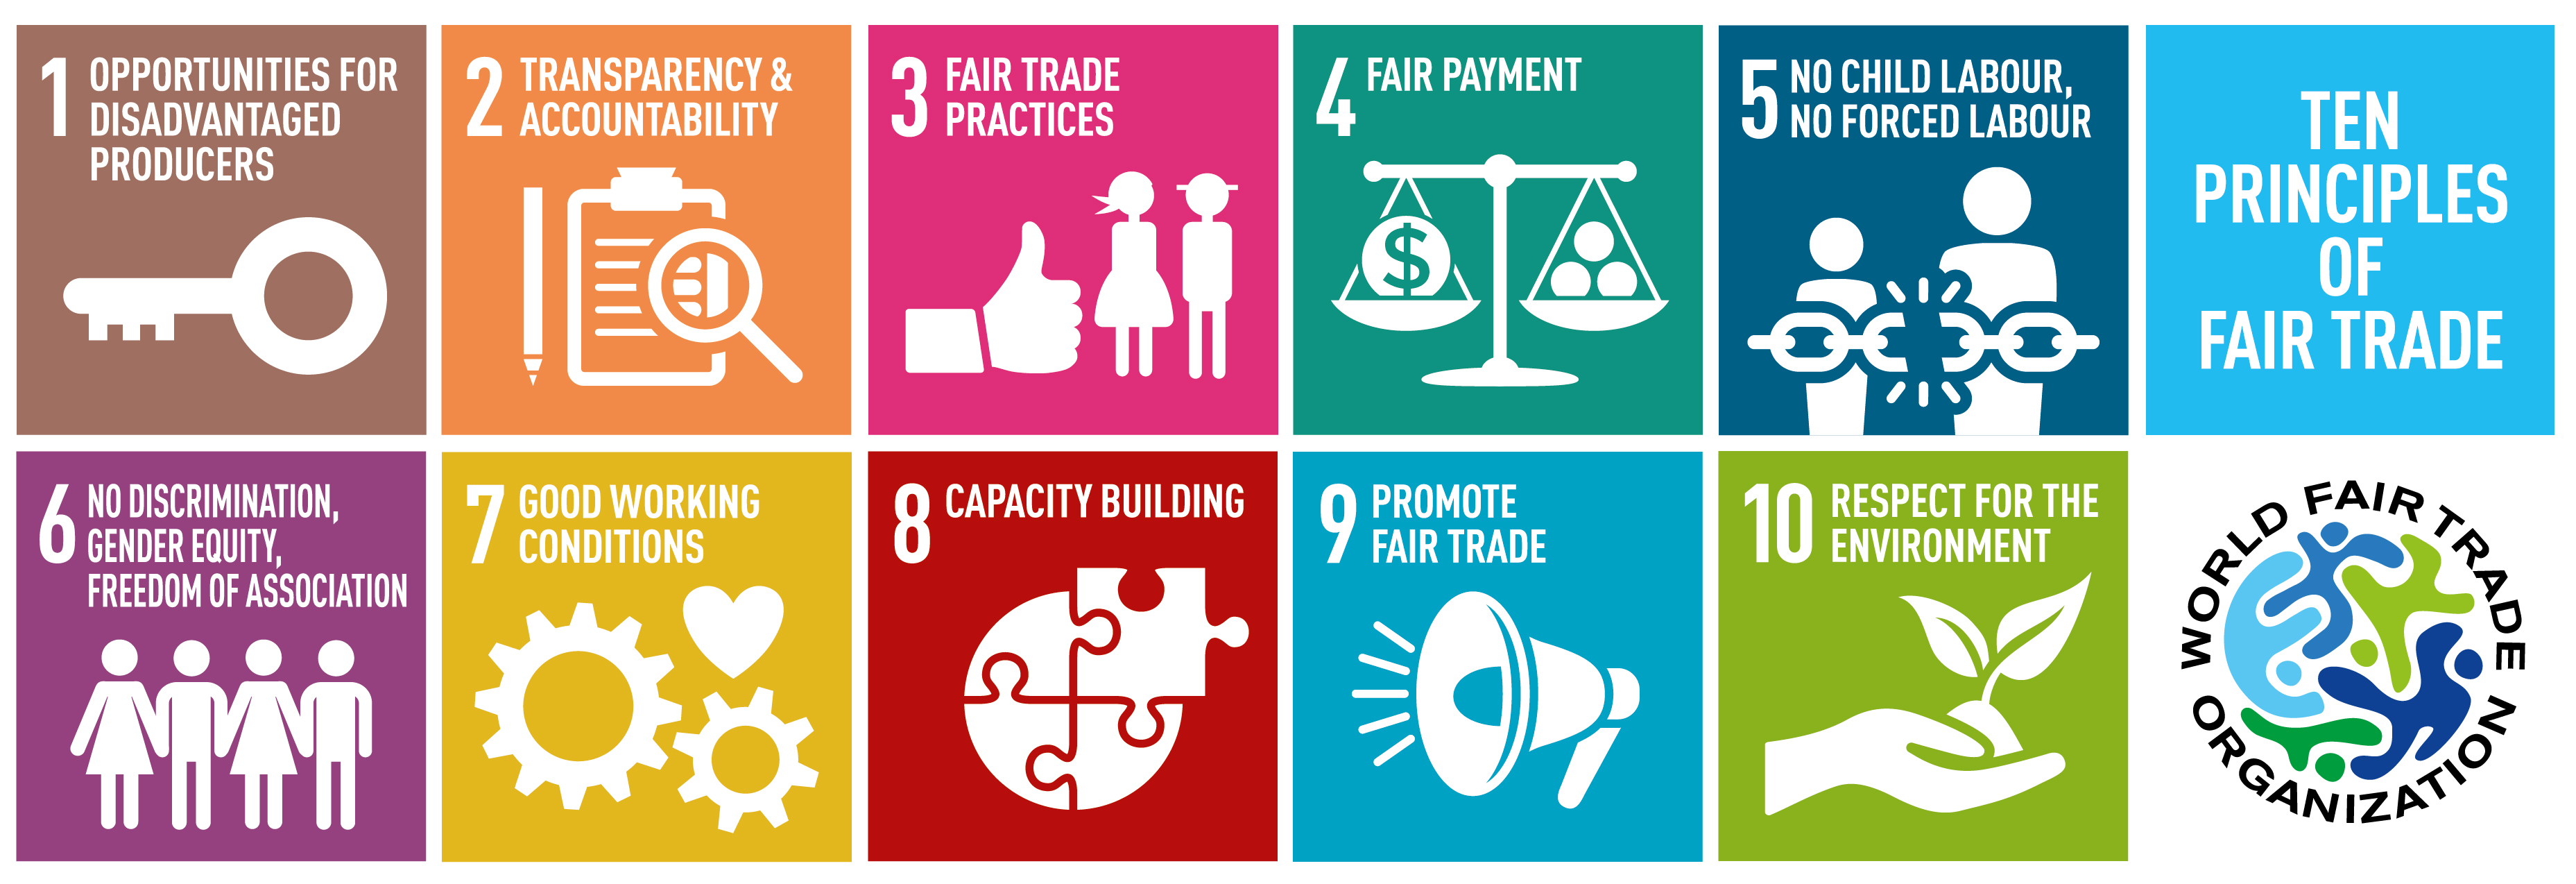 WFTO - 10 Principles of fair trade